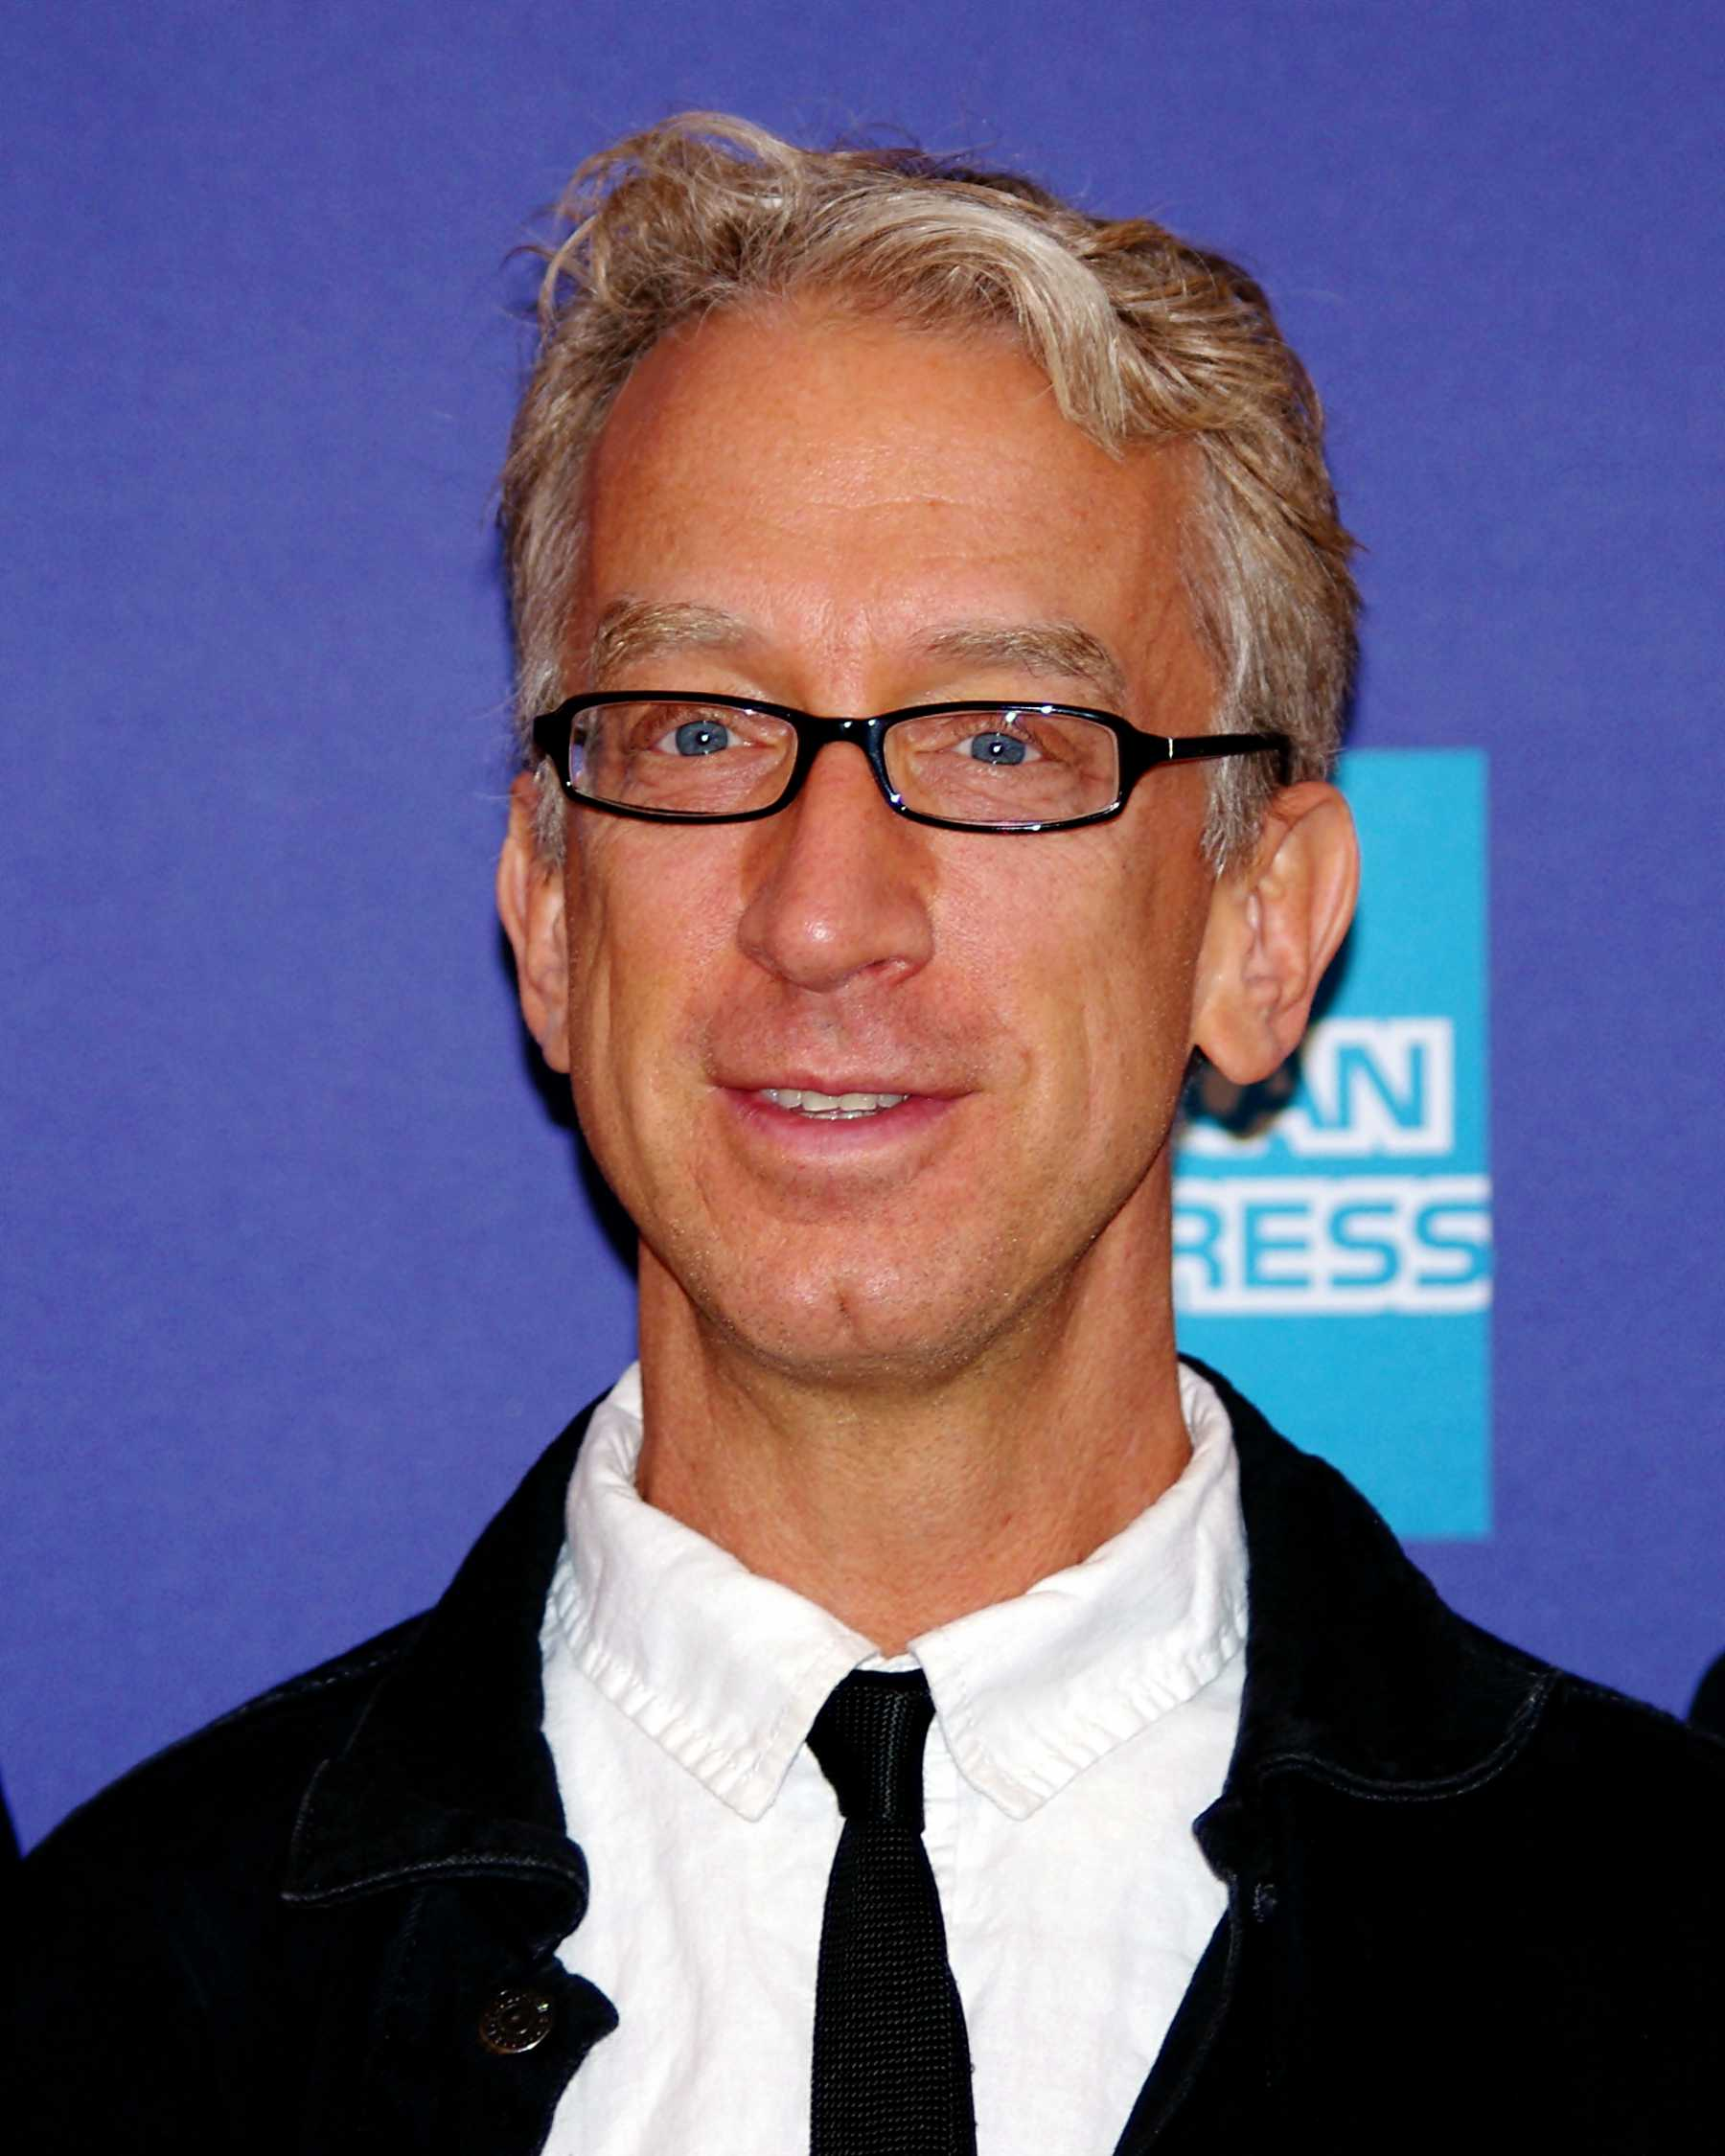 Andy Dick Currently Being Held On Suspicion Of Felony Grand Theft | Andy Dick